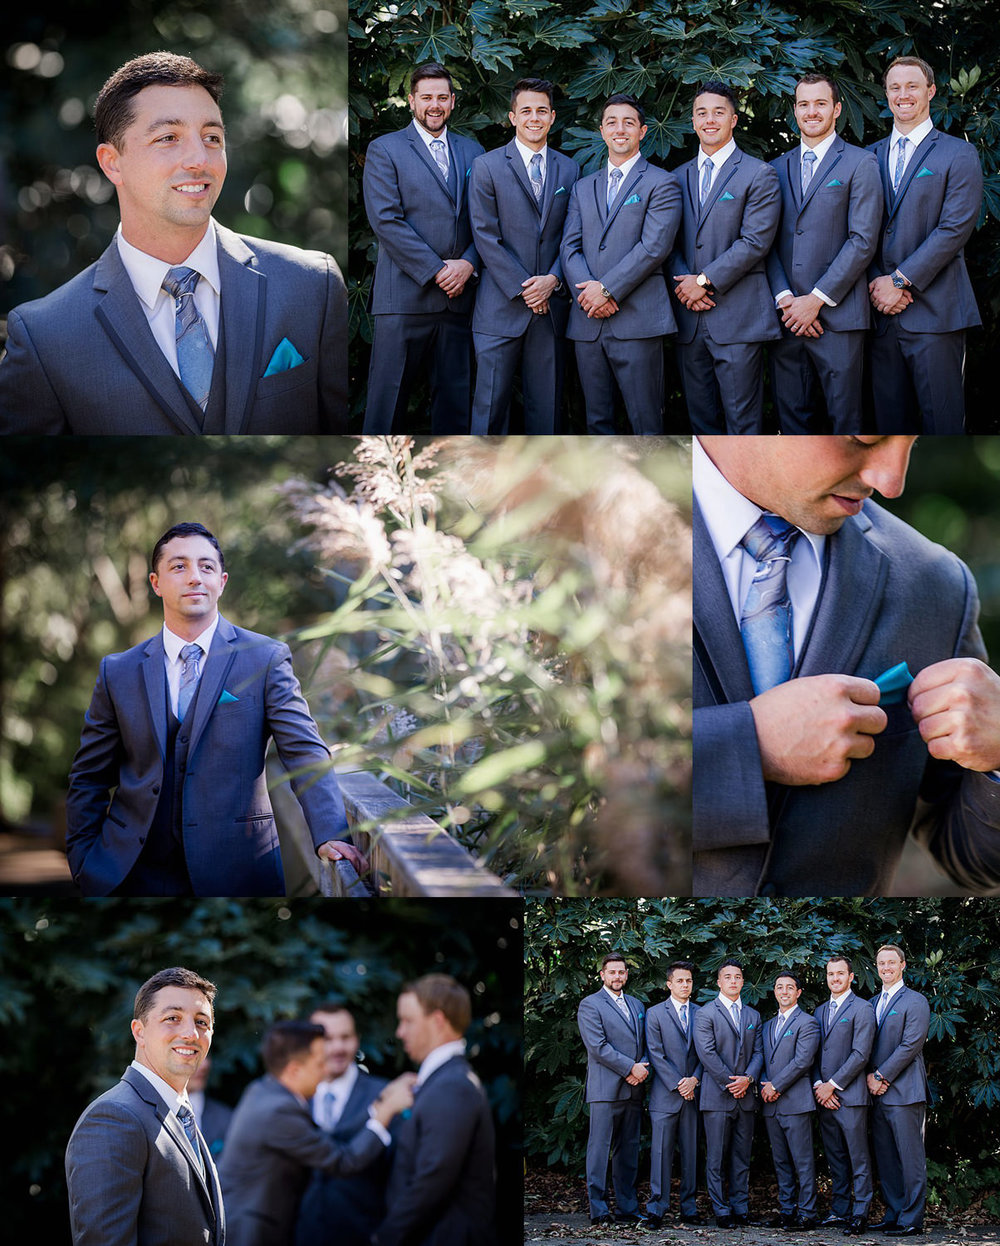 MOCA-virginia-beach-wedding-groomsmen-portraits-melissa-bliss-photography-VA-destination-wedding-photographer.jpg